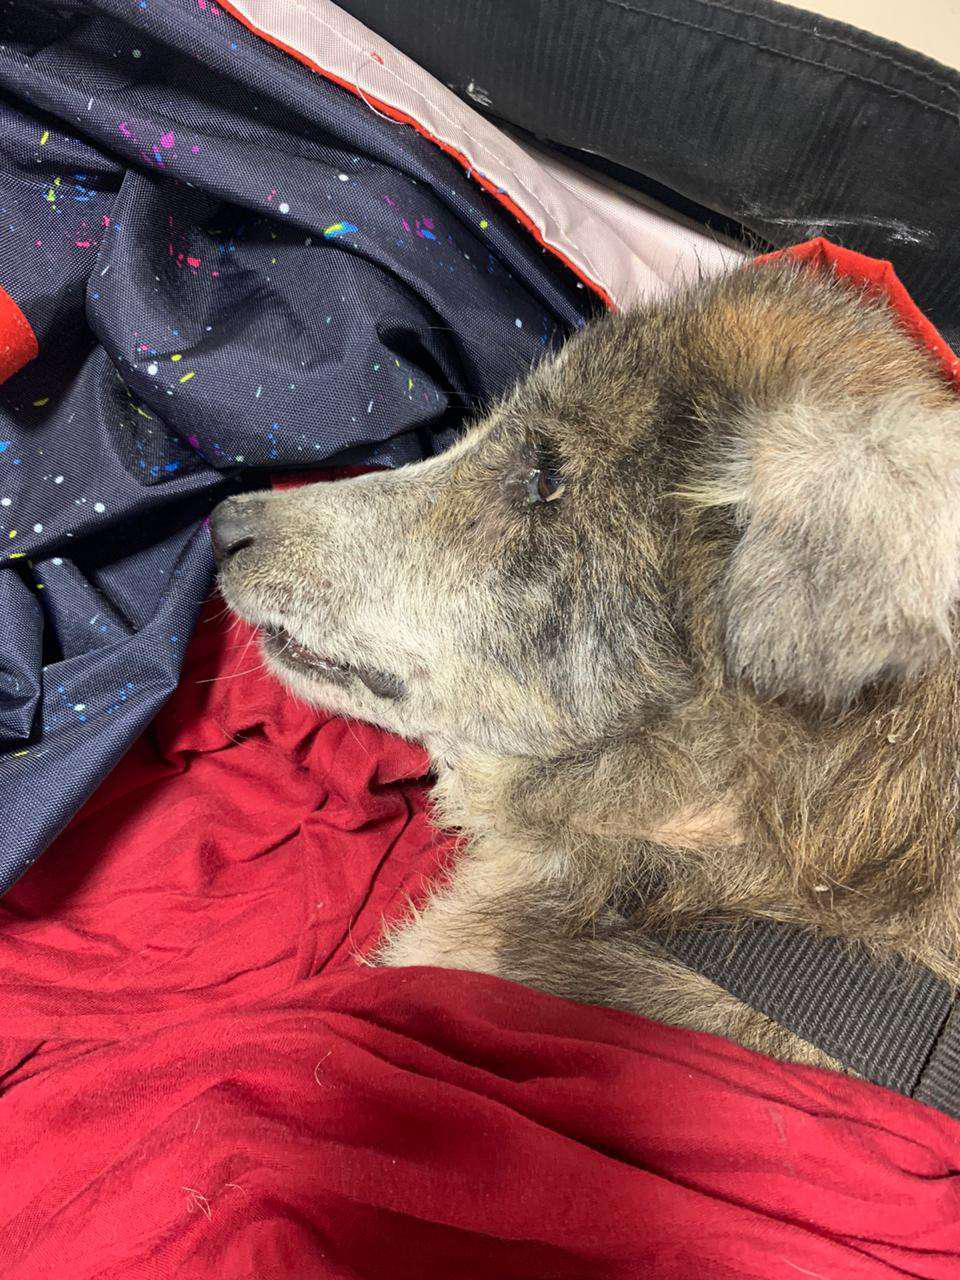 Fraser Town Residents Rush Wounded Dog To Be Saved. People Contribute To Cover Expenses